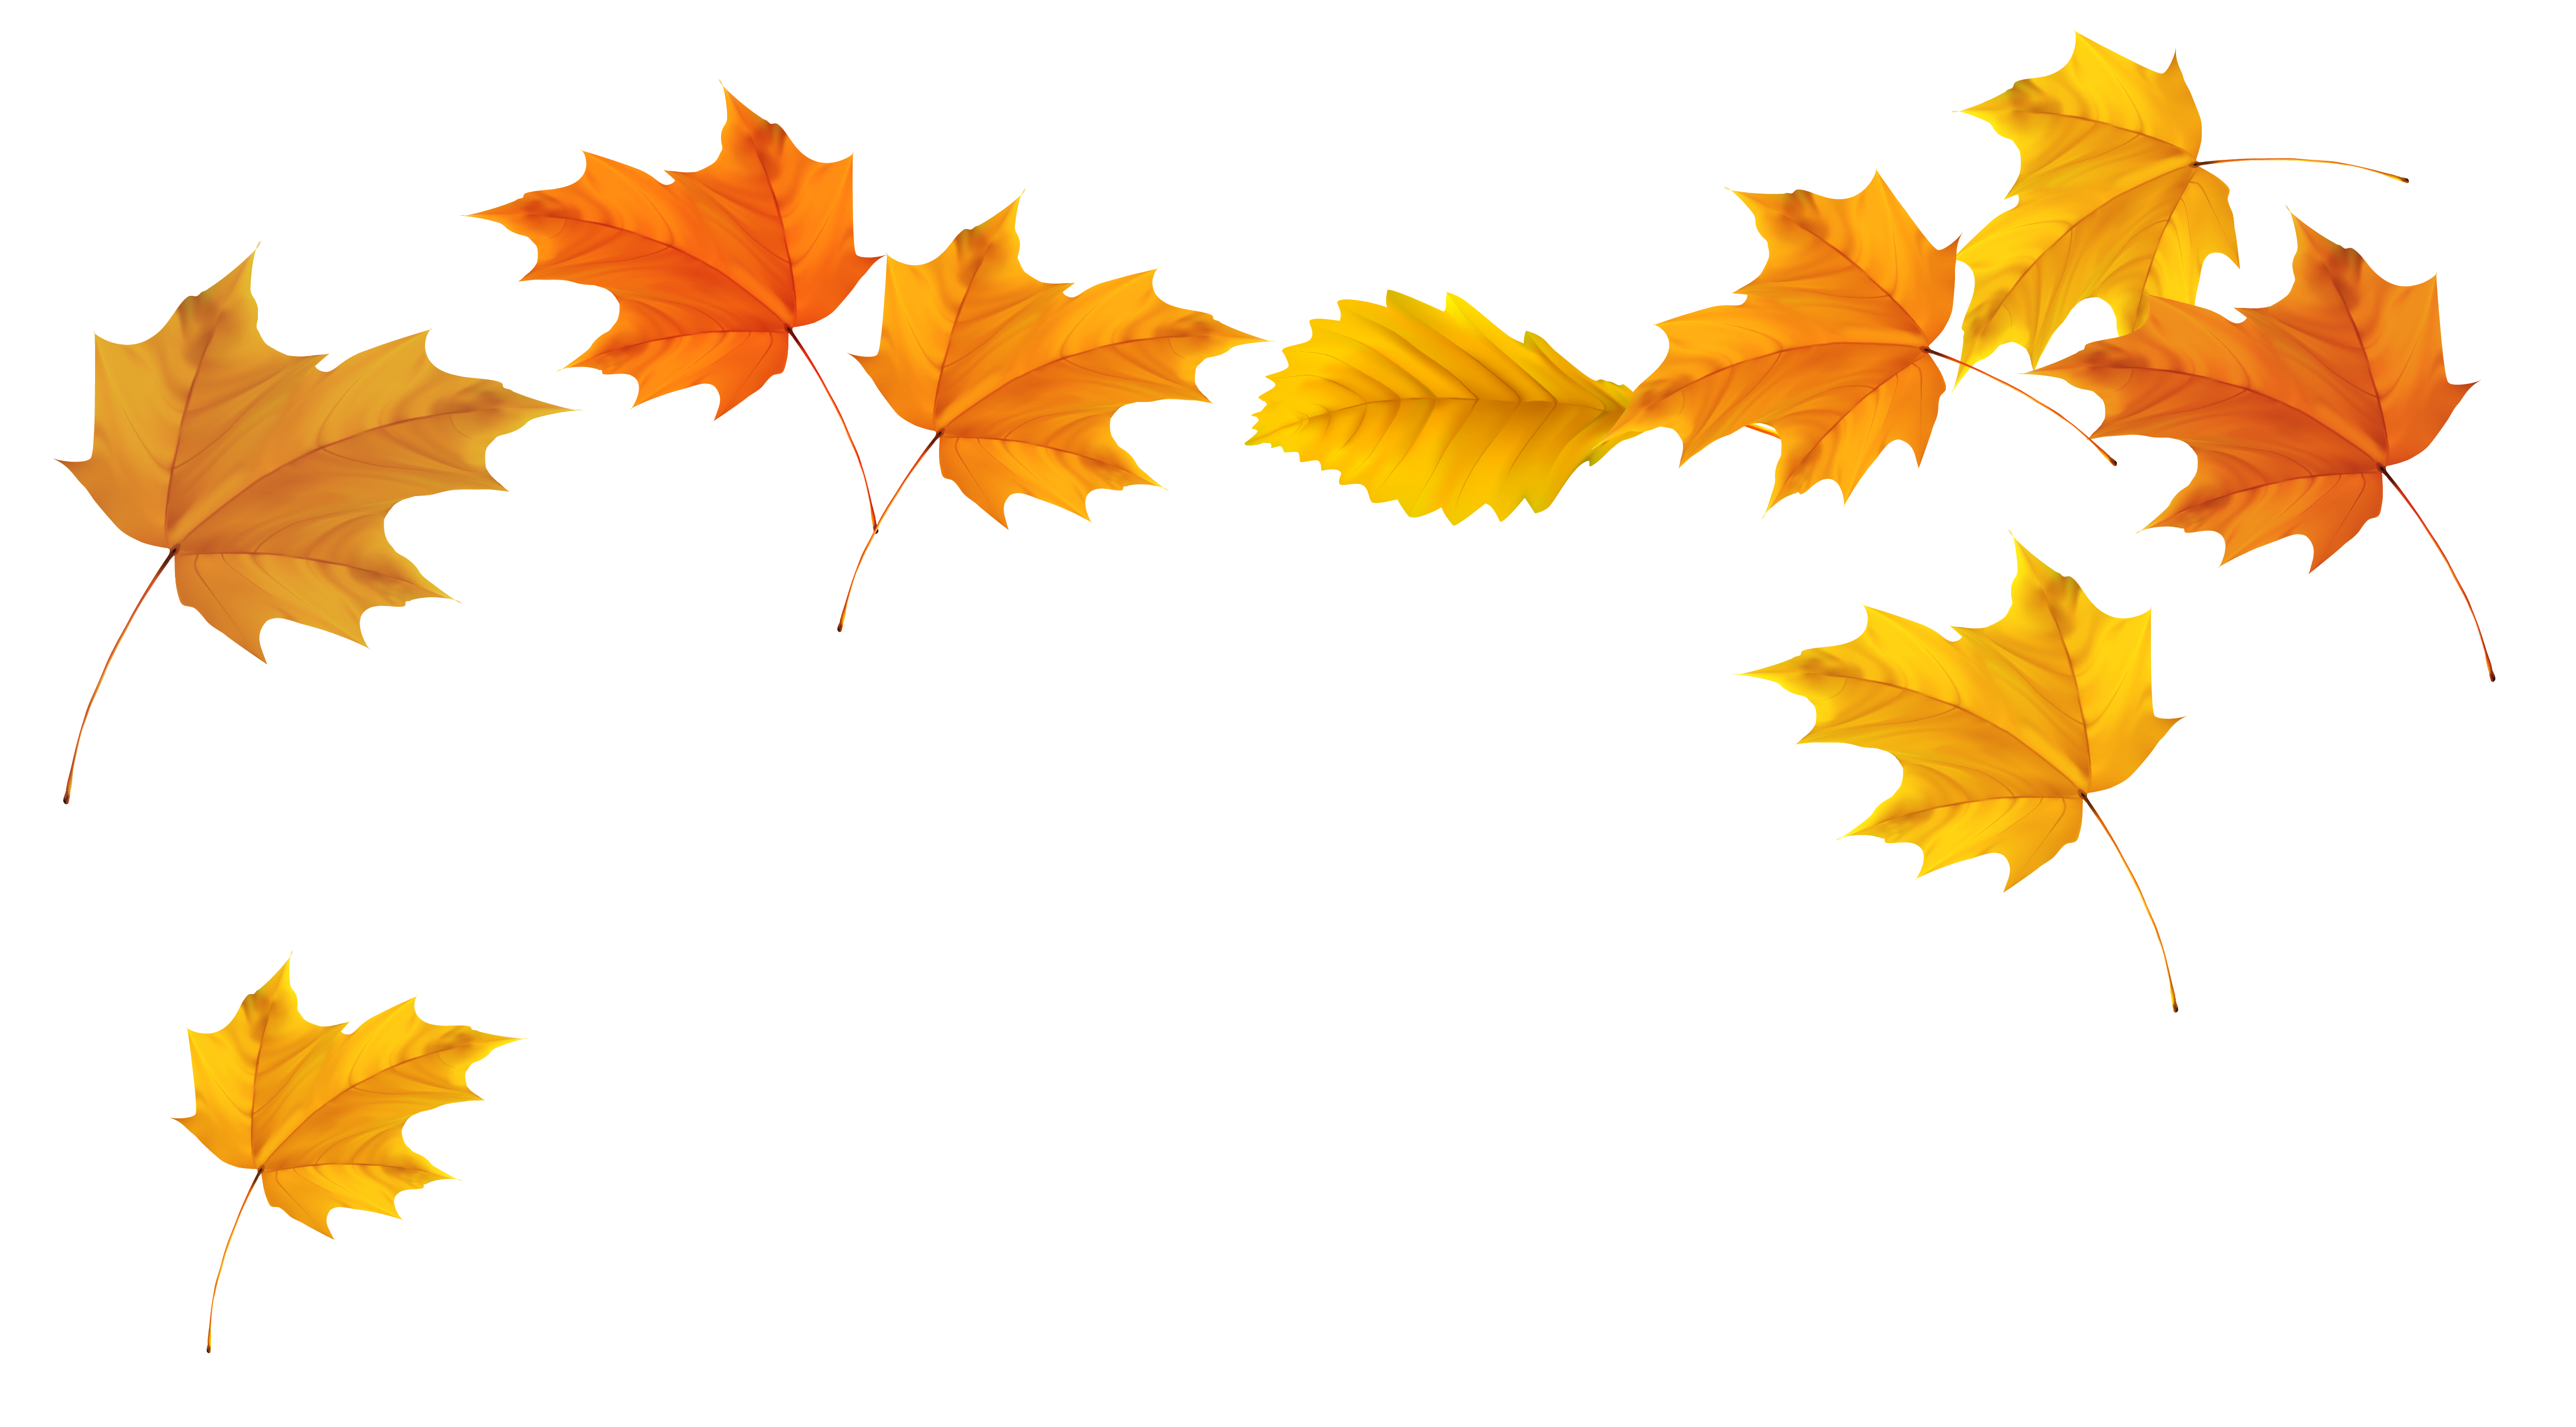 Wind clipart falling leave Images falling clipart leaves art